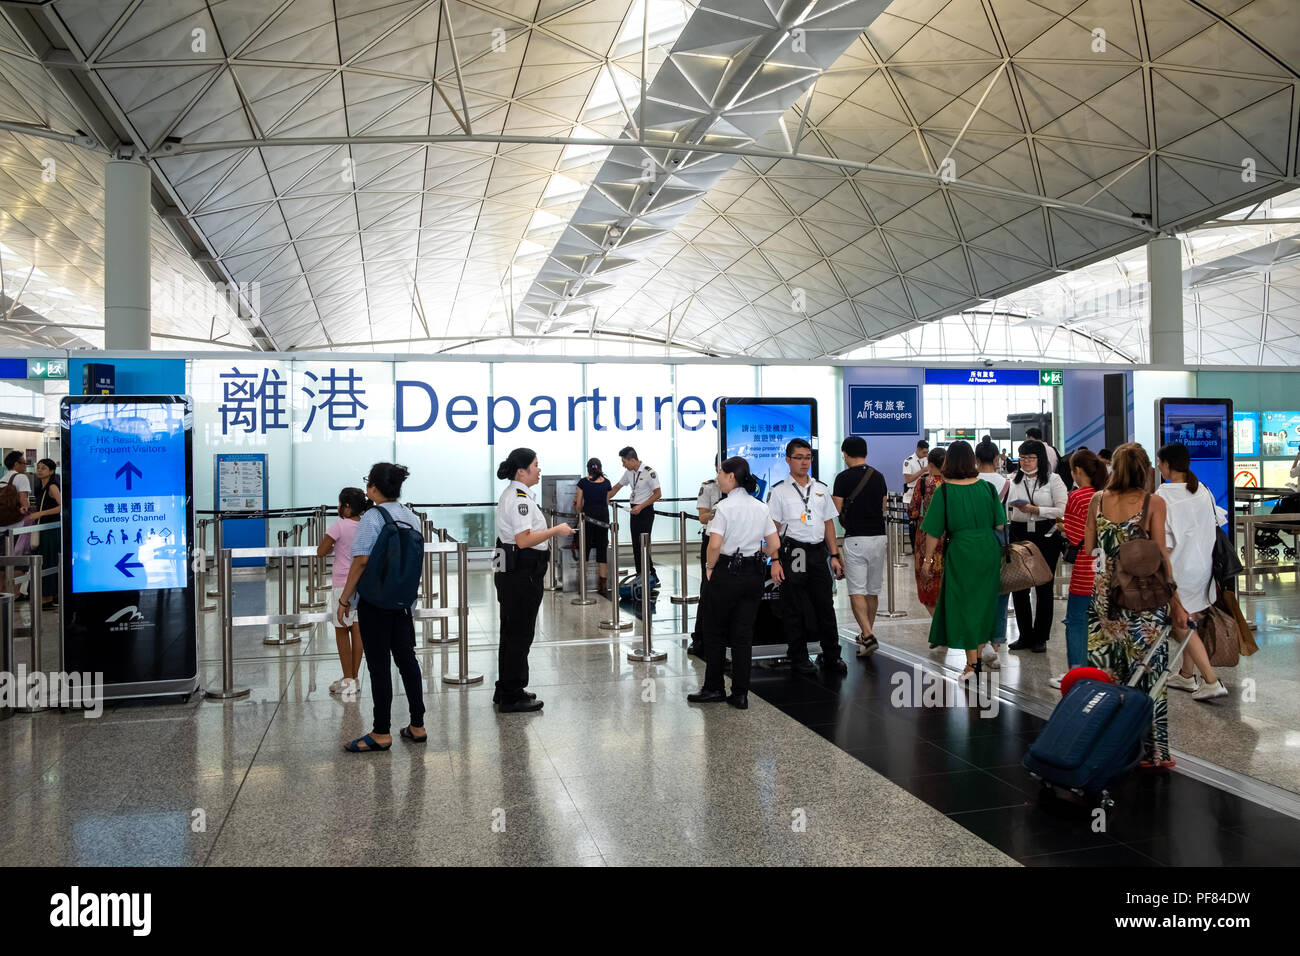 Lantau, Hong Kong - Août 05, 2018 : Les passagers porte bagages à l'Aéroport International de Hong Kong Photo Stock